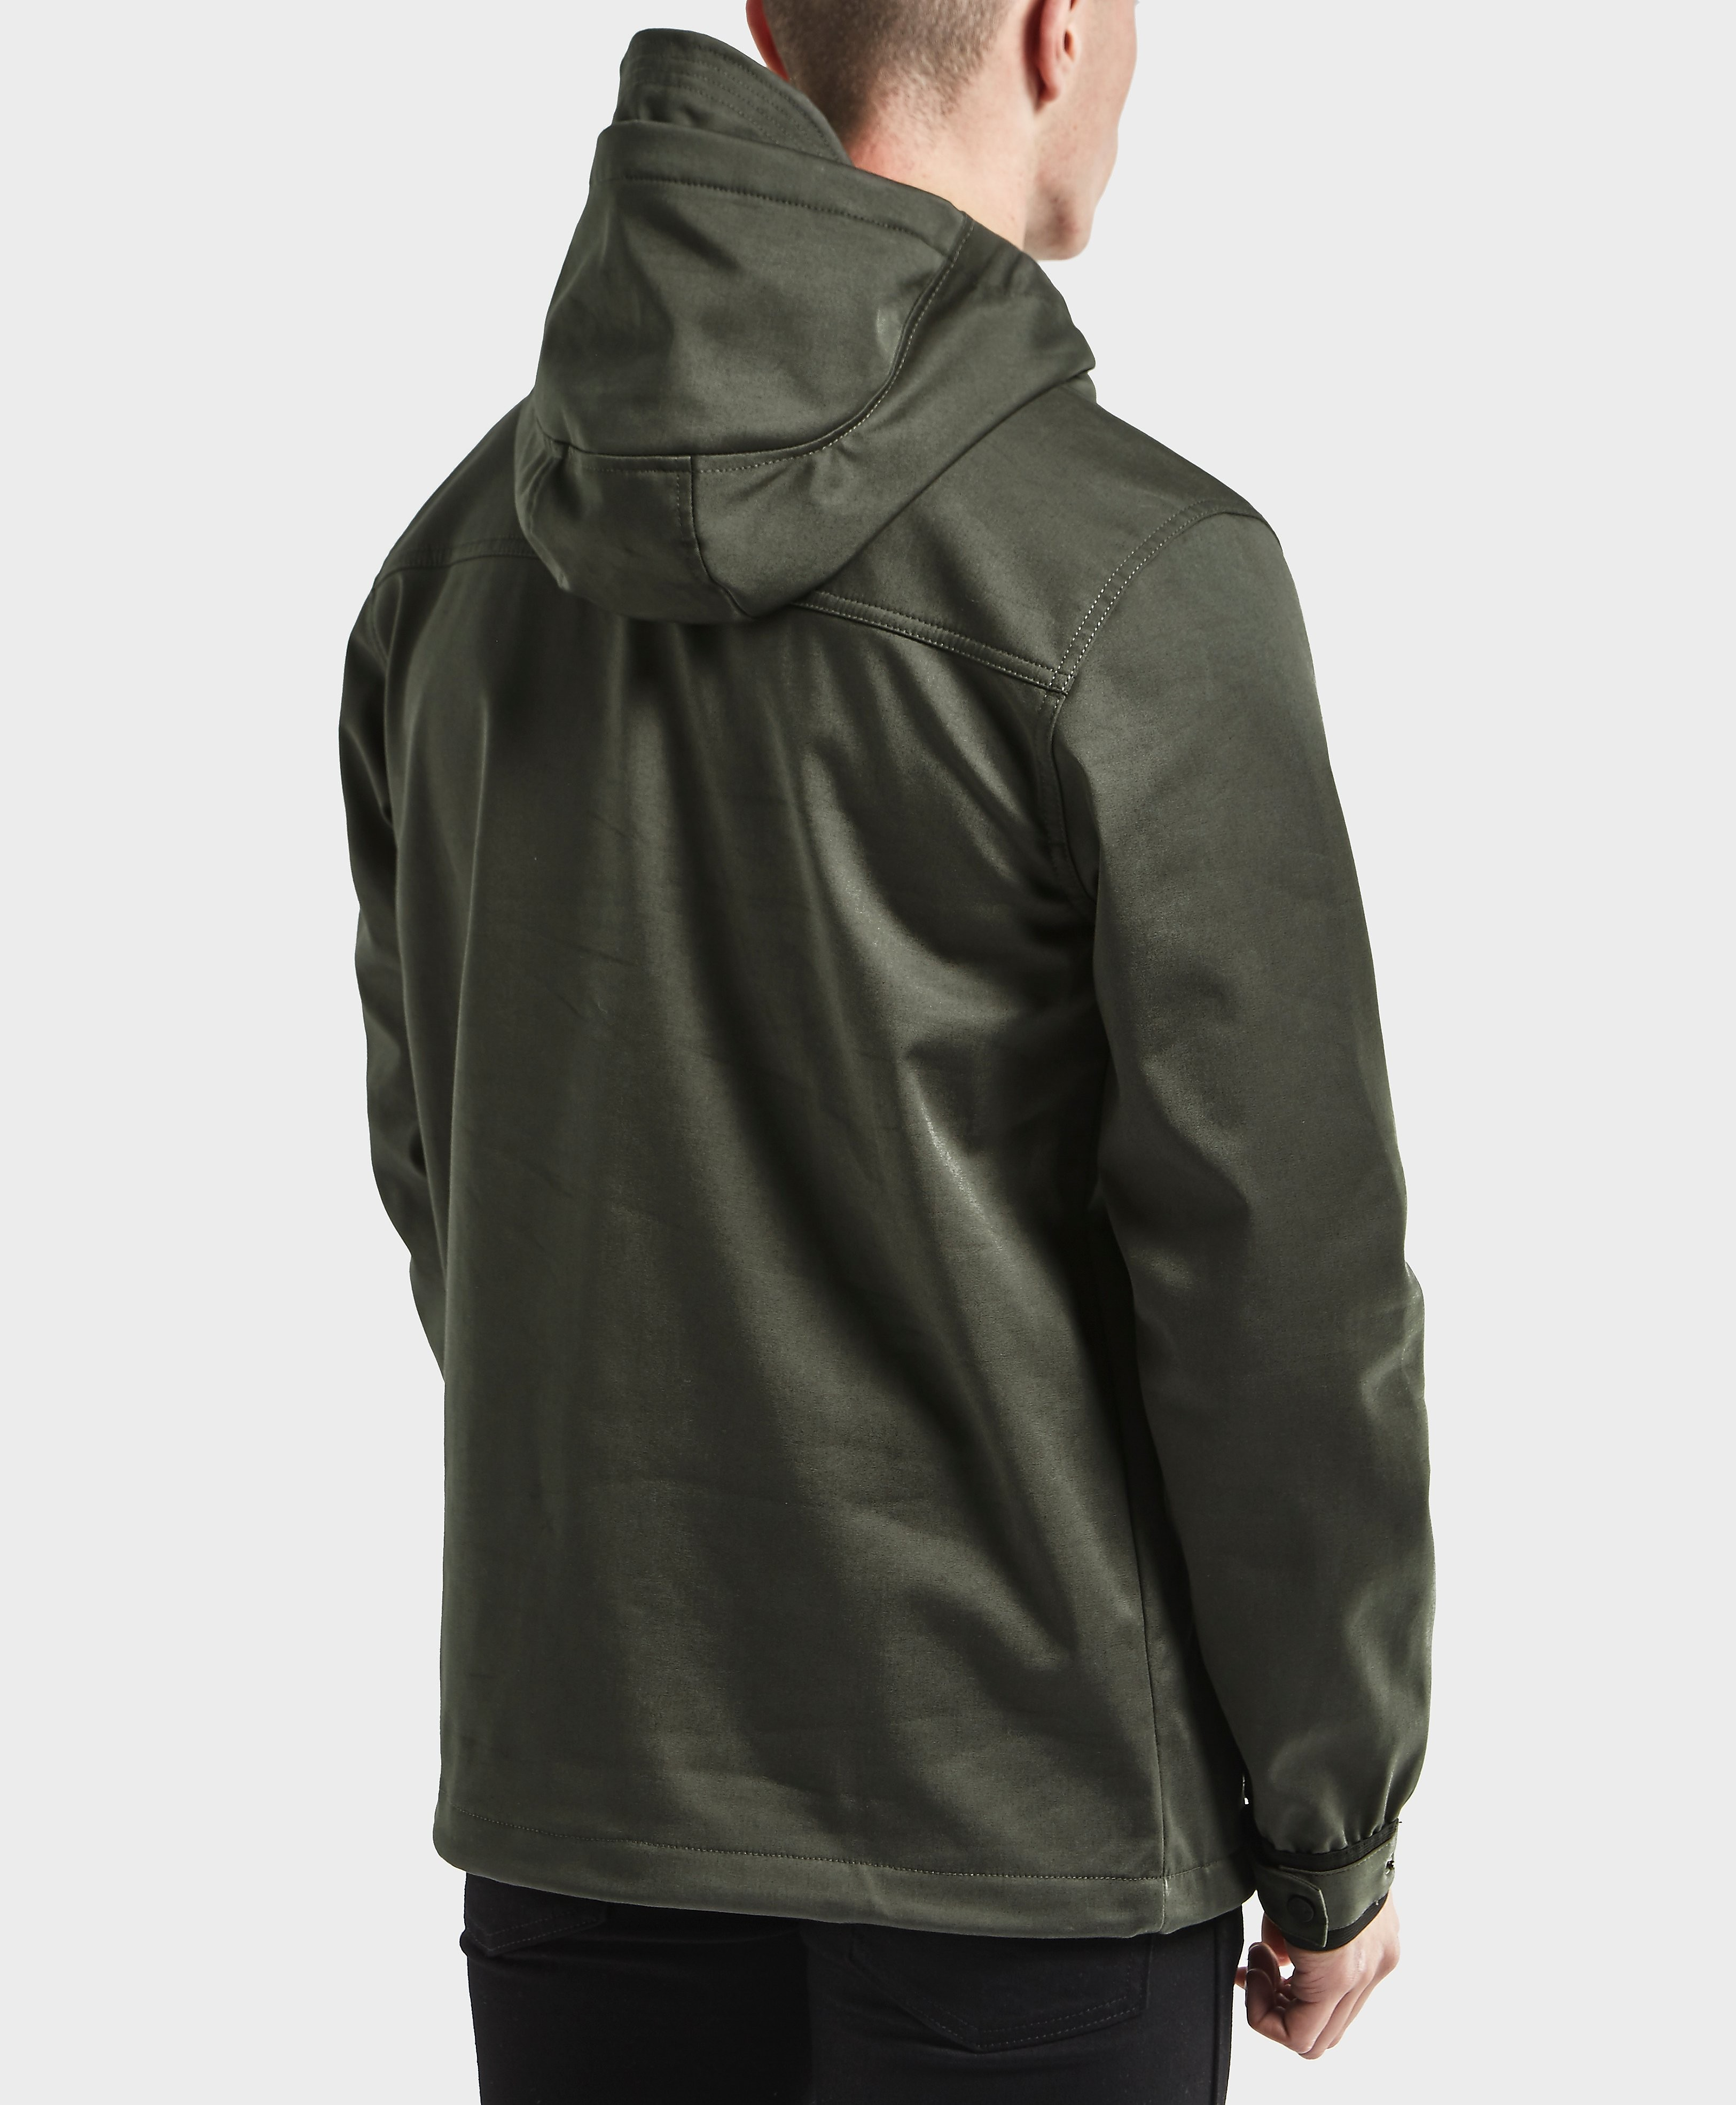 Marshall Artist Twill Light Jacket